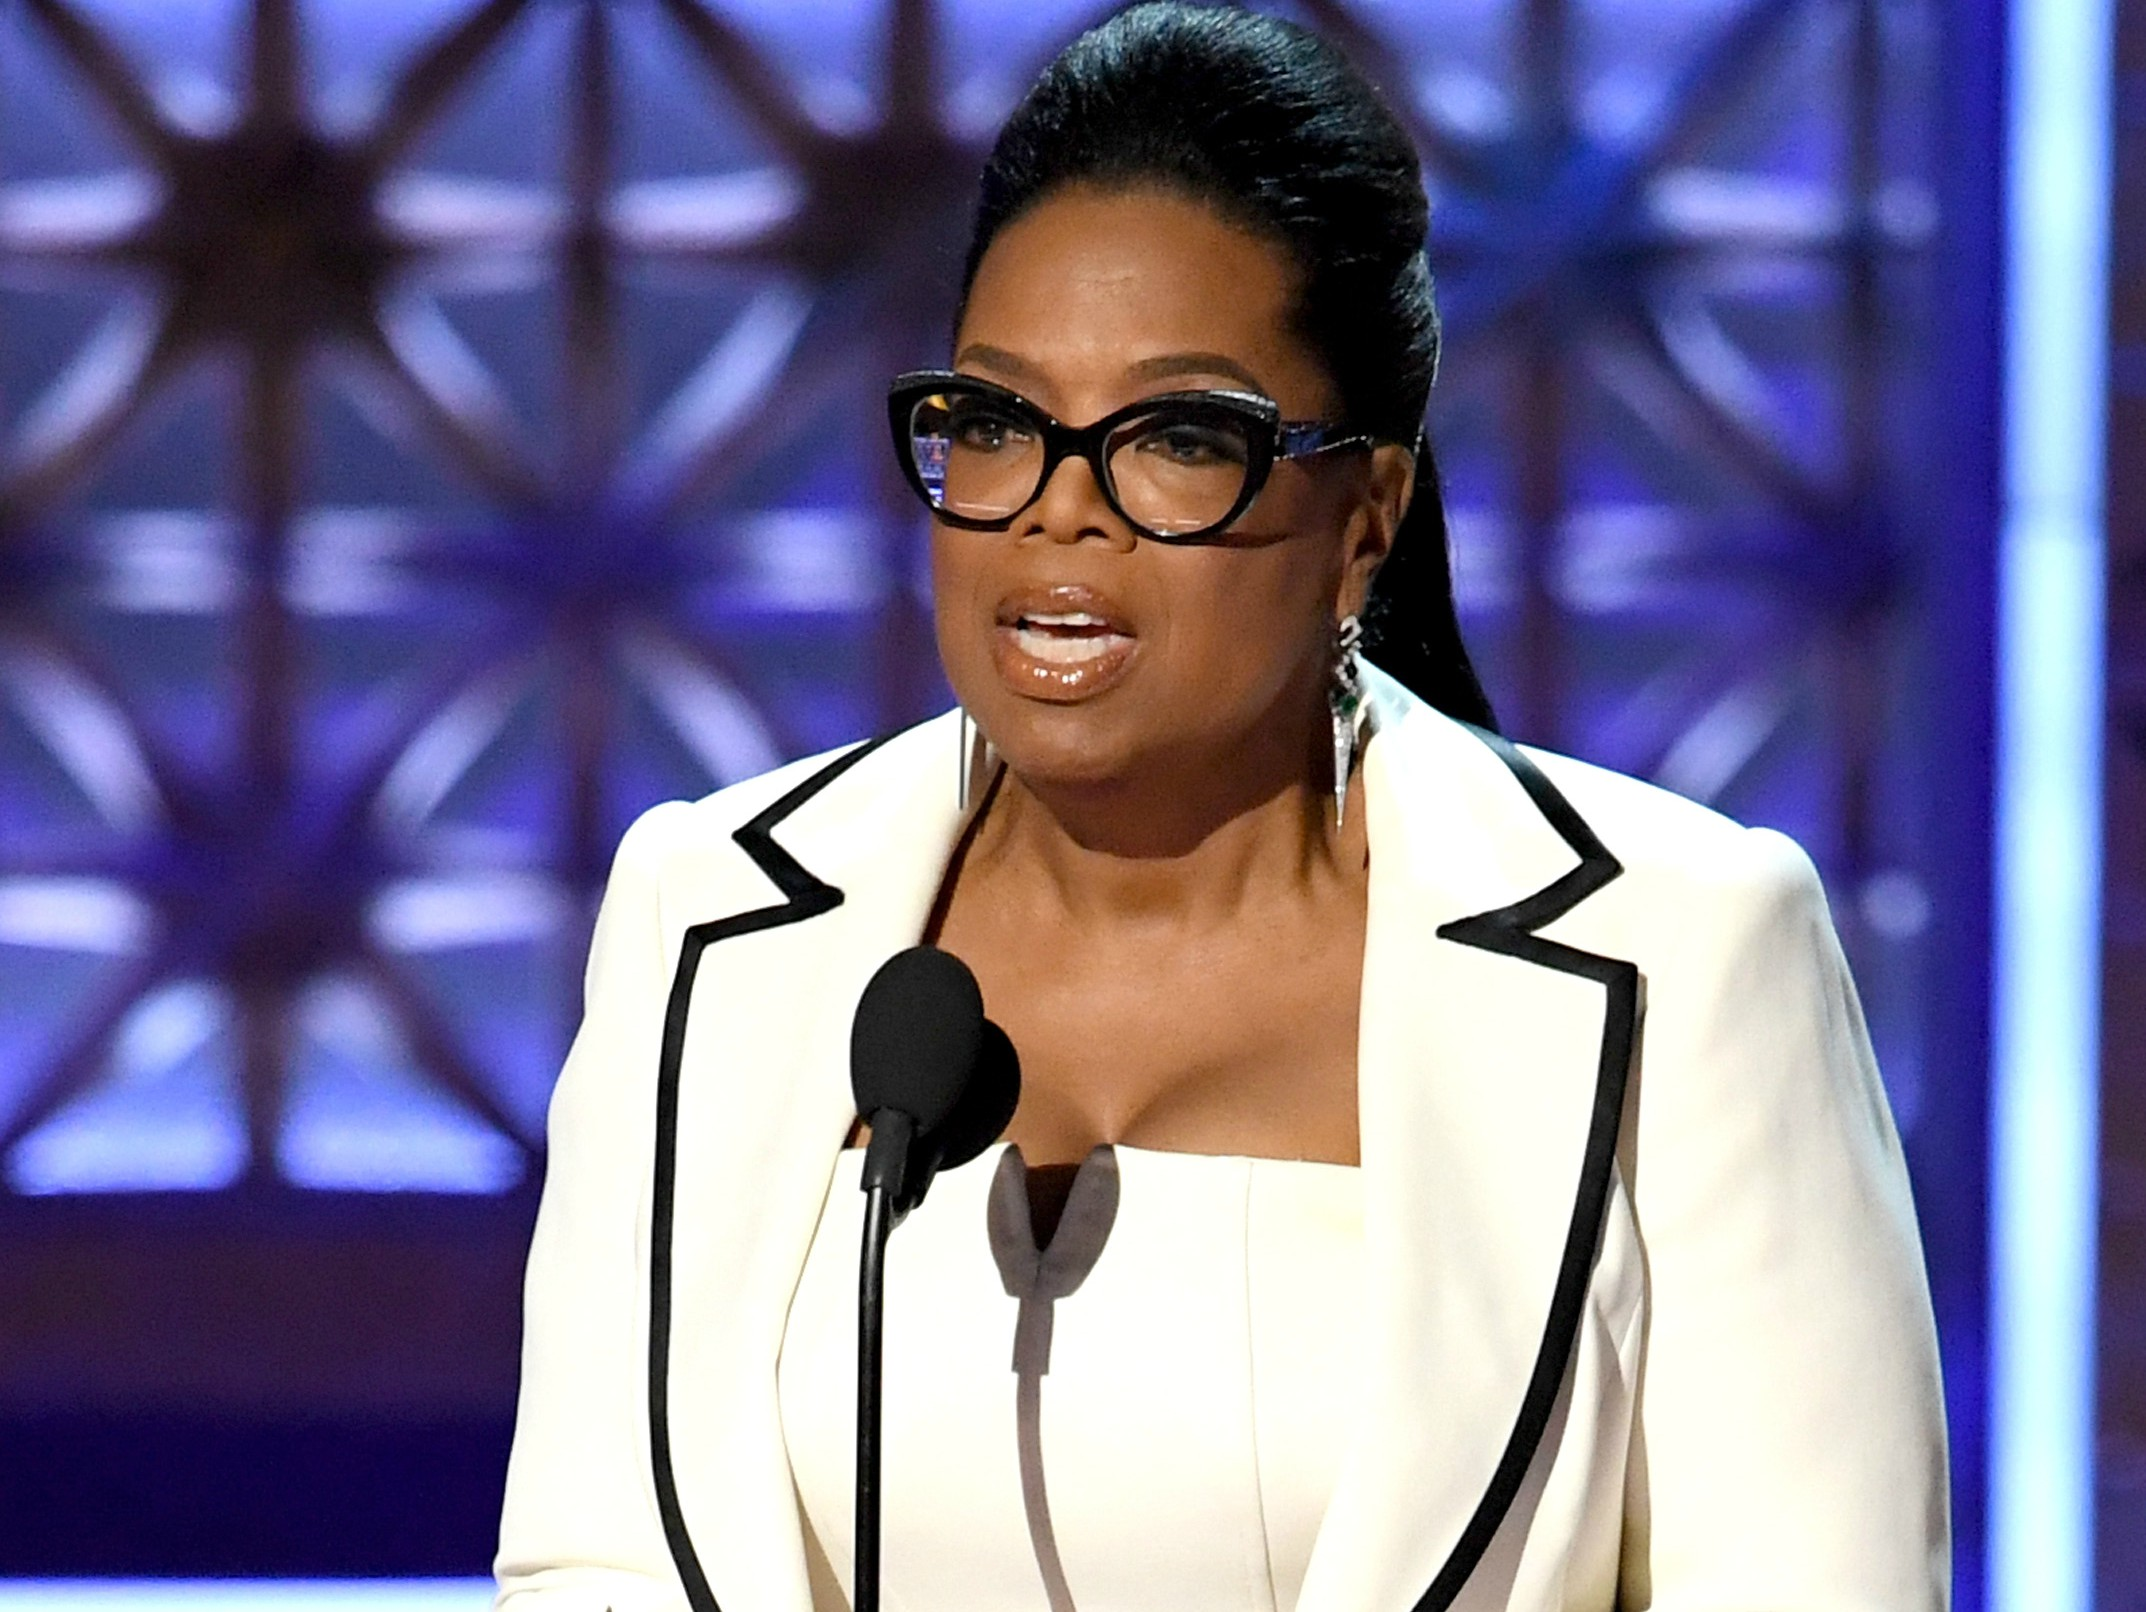 Oprah warns her fans about scammers impersonating her on social media Video